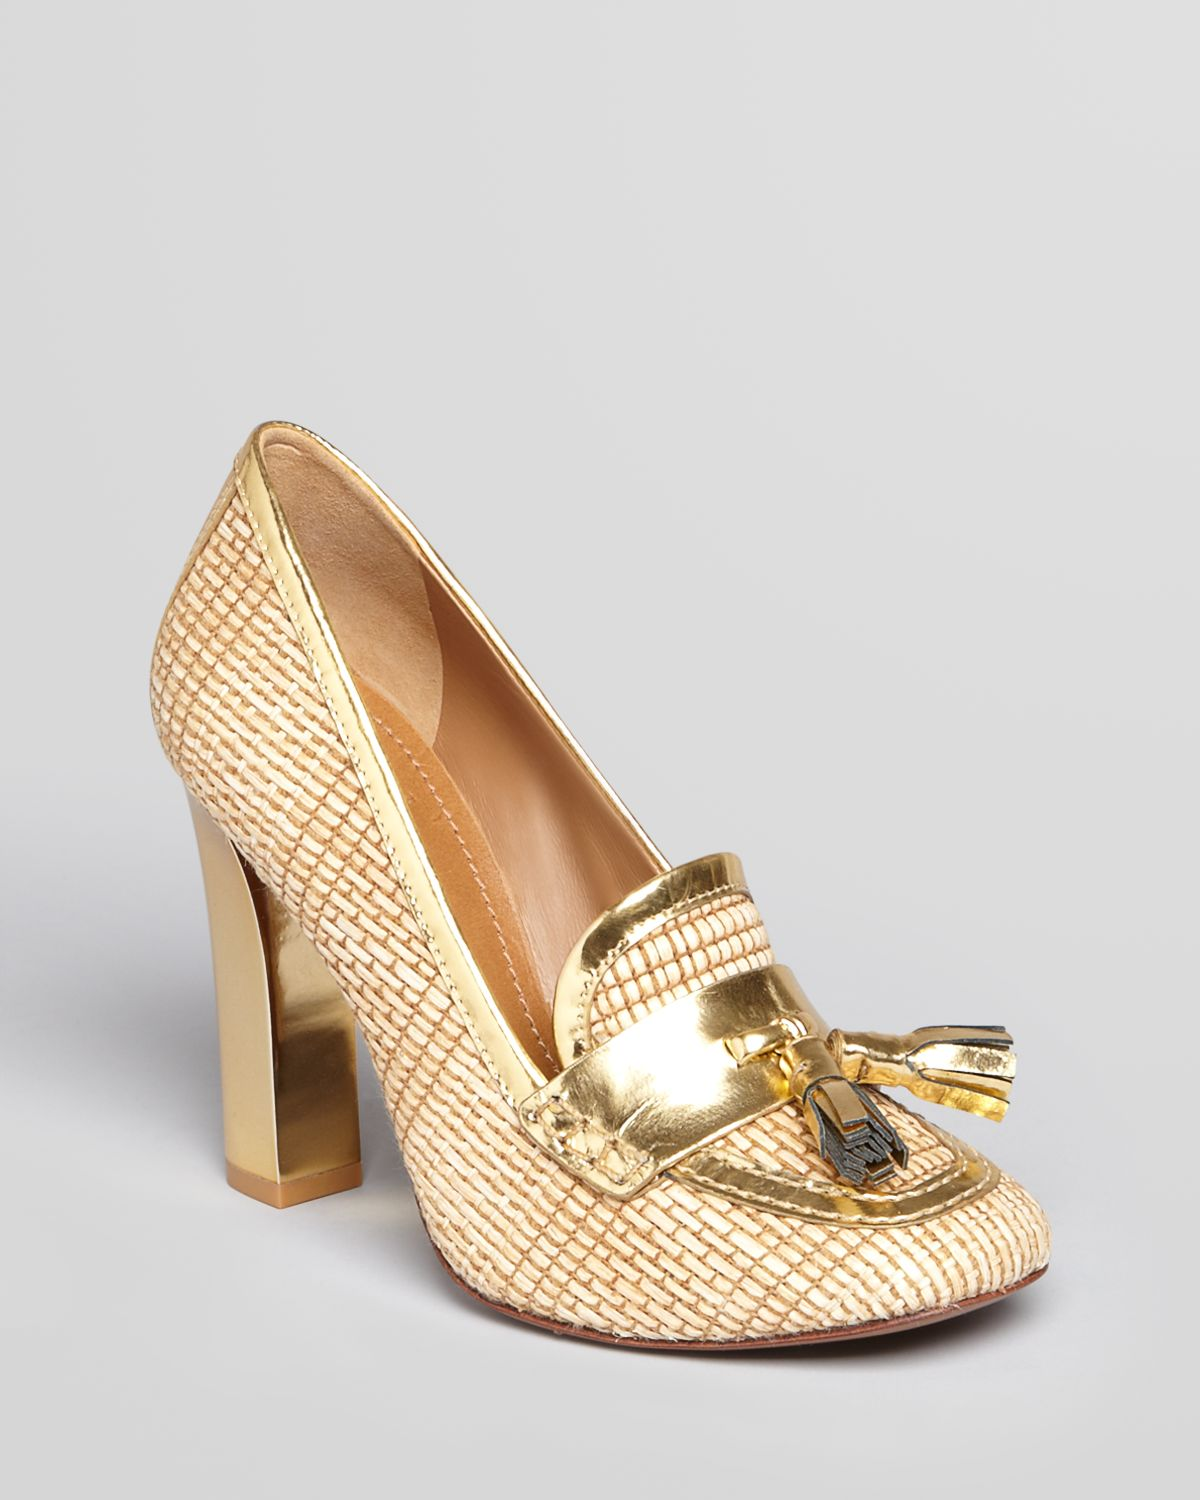 9c1f80620740 Lyst - Tory Burch Loafer Pumps Careen High Heel in Natural